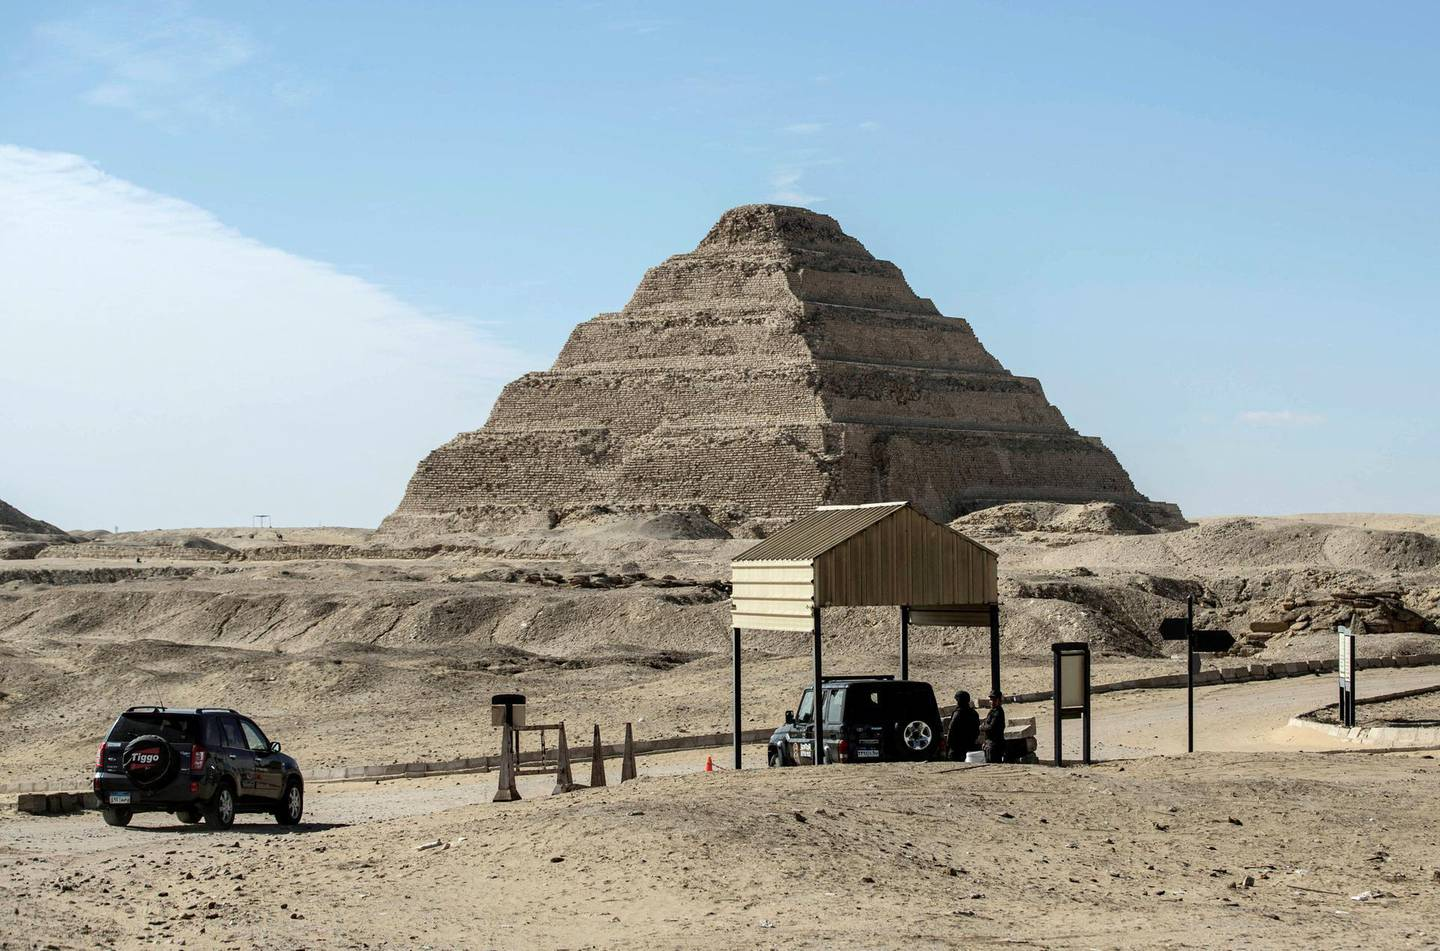 Egyptian security officers man their station across from the step pyramid of Djoser at the Saqqara necropolis south of Cairo, on January 17, 2021. - Egypt announced the discovery of a new trove of treasures at the necropolis which lies 30kms south of the capital, including the funerary temple of Queen Naert, wife of King Teti, as well as burial shafts, coffins, and mummies dating back to nearly 3000 years ago during the New Kingdom. (Photo by Khaled DESOUKI / AFP)